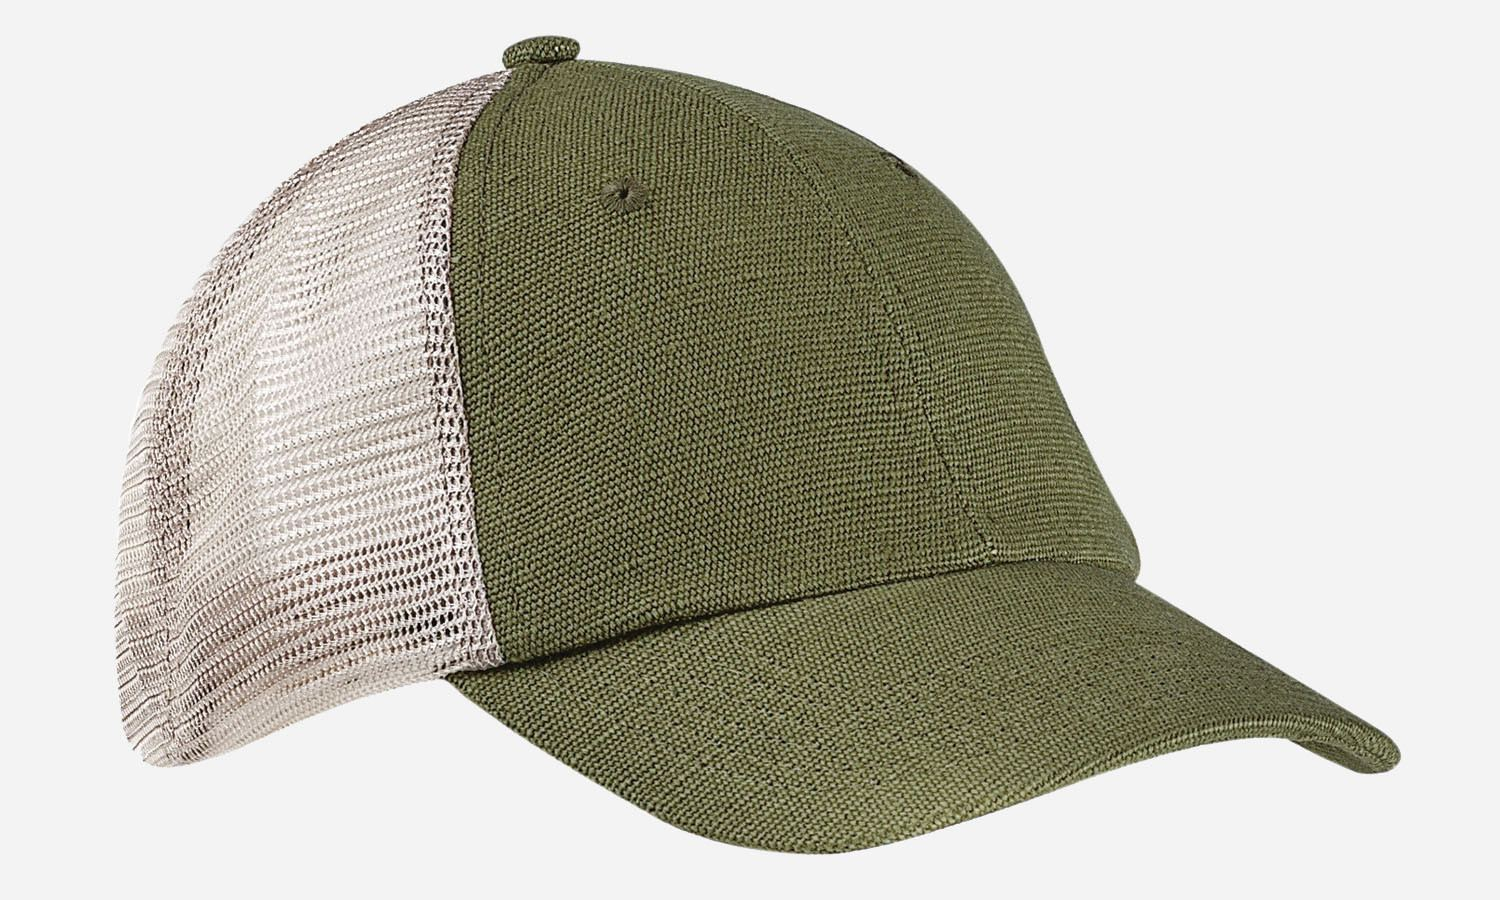 6d73d290c9b8d Hemp Washed Soft Mesh Trucker